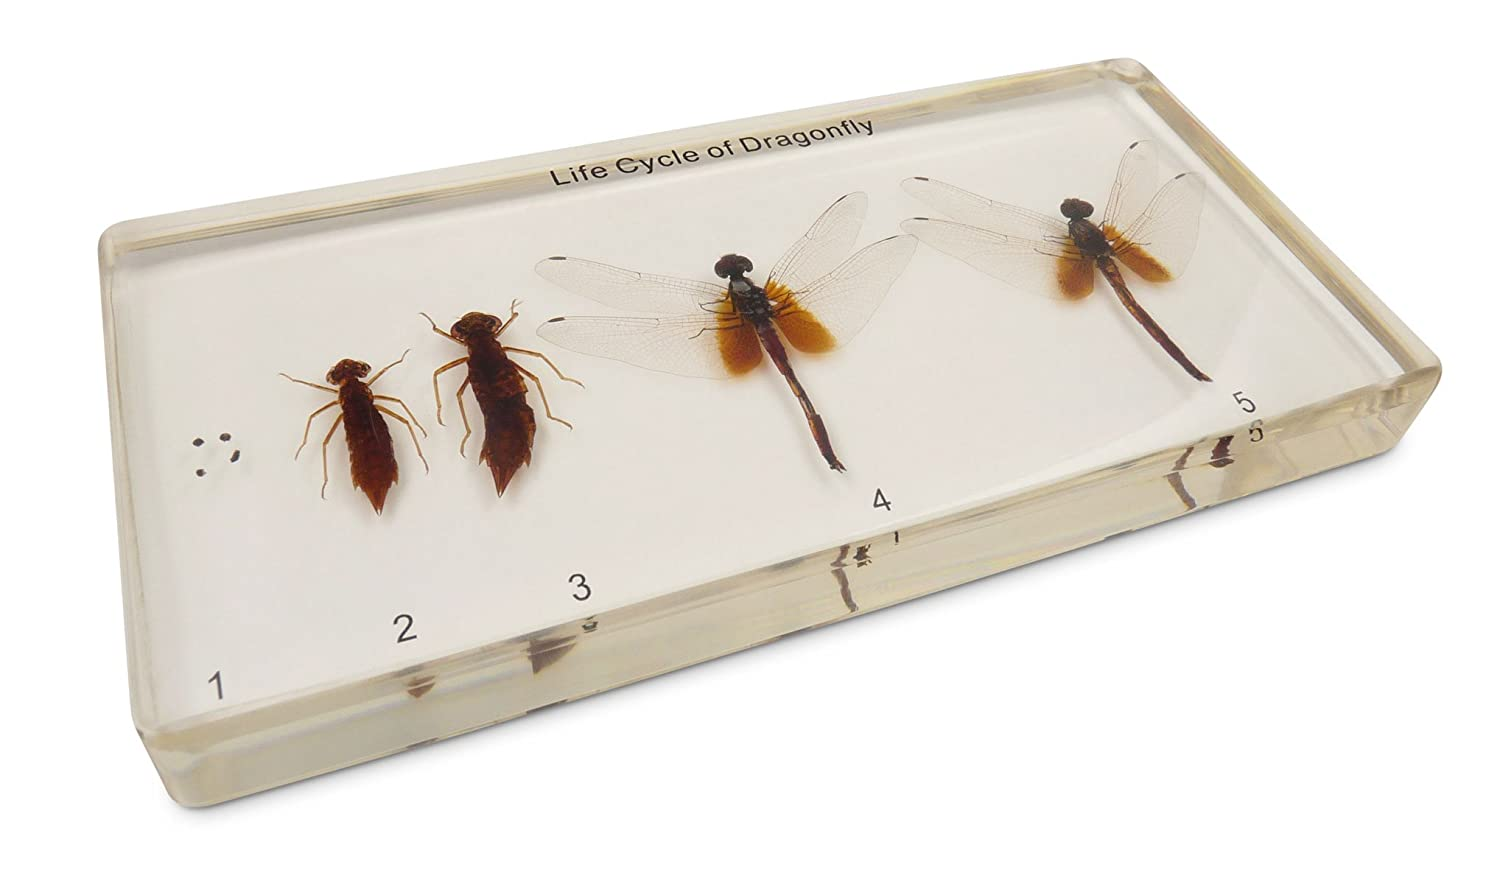 Taxidermy Specimen, Unique, Resin Paperweight, Dragonfly Development Life Cycle in Acrylic Block, Complete with All 5 Growth Stages, Talkative Decoration or Educational Tool Luminoptic M7-OIBT-S2EL